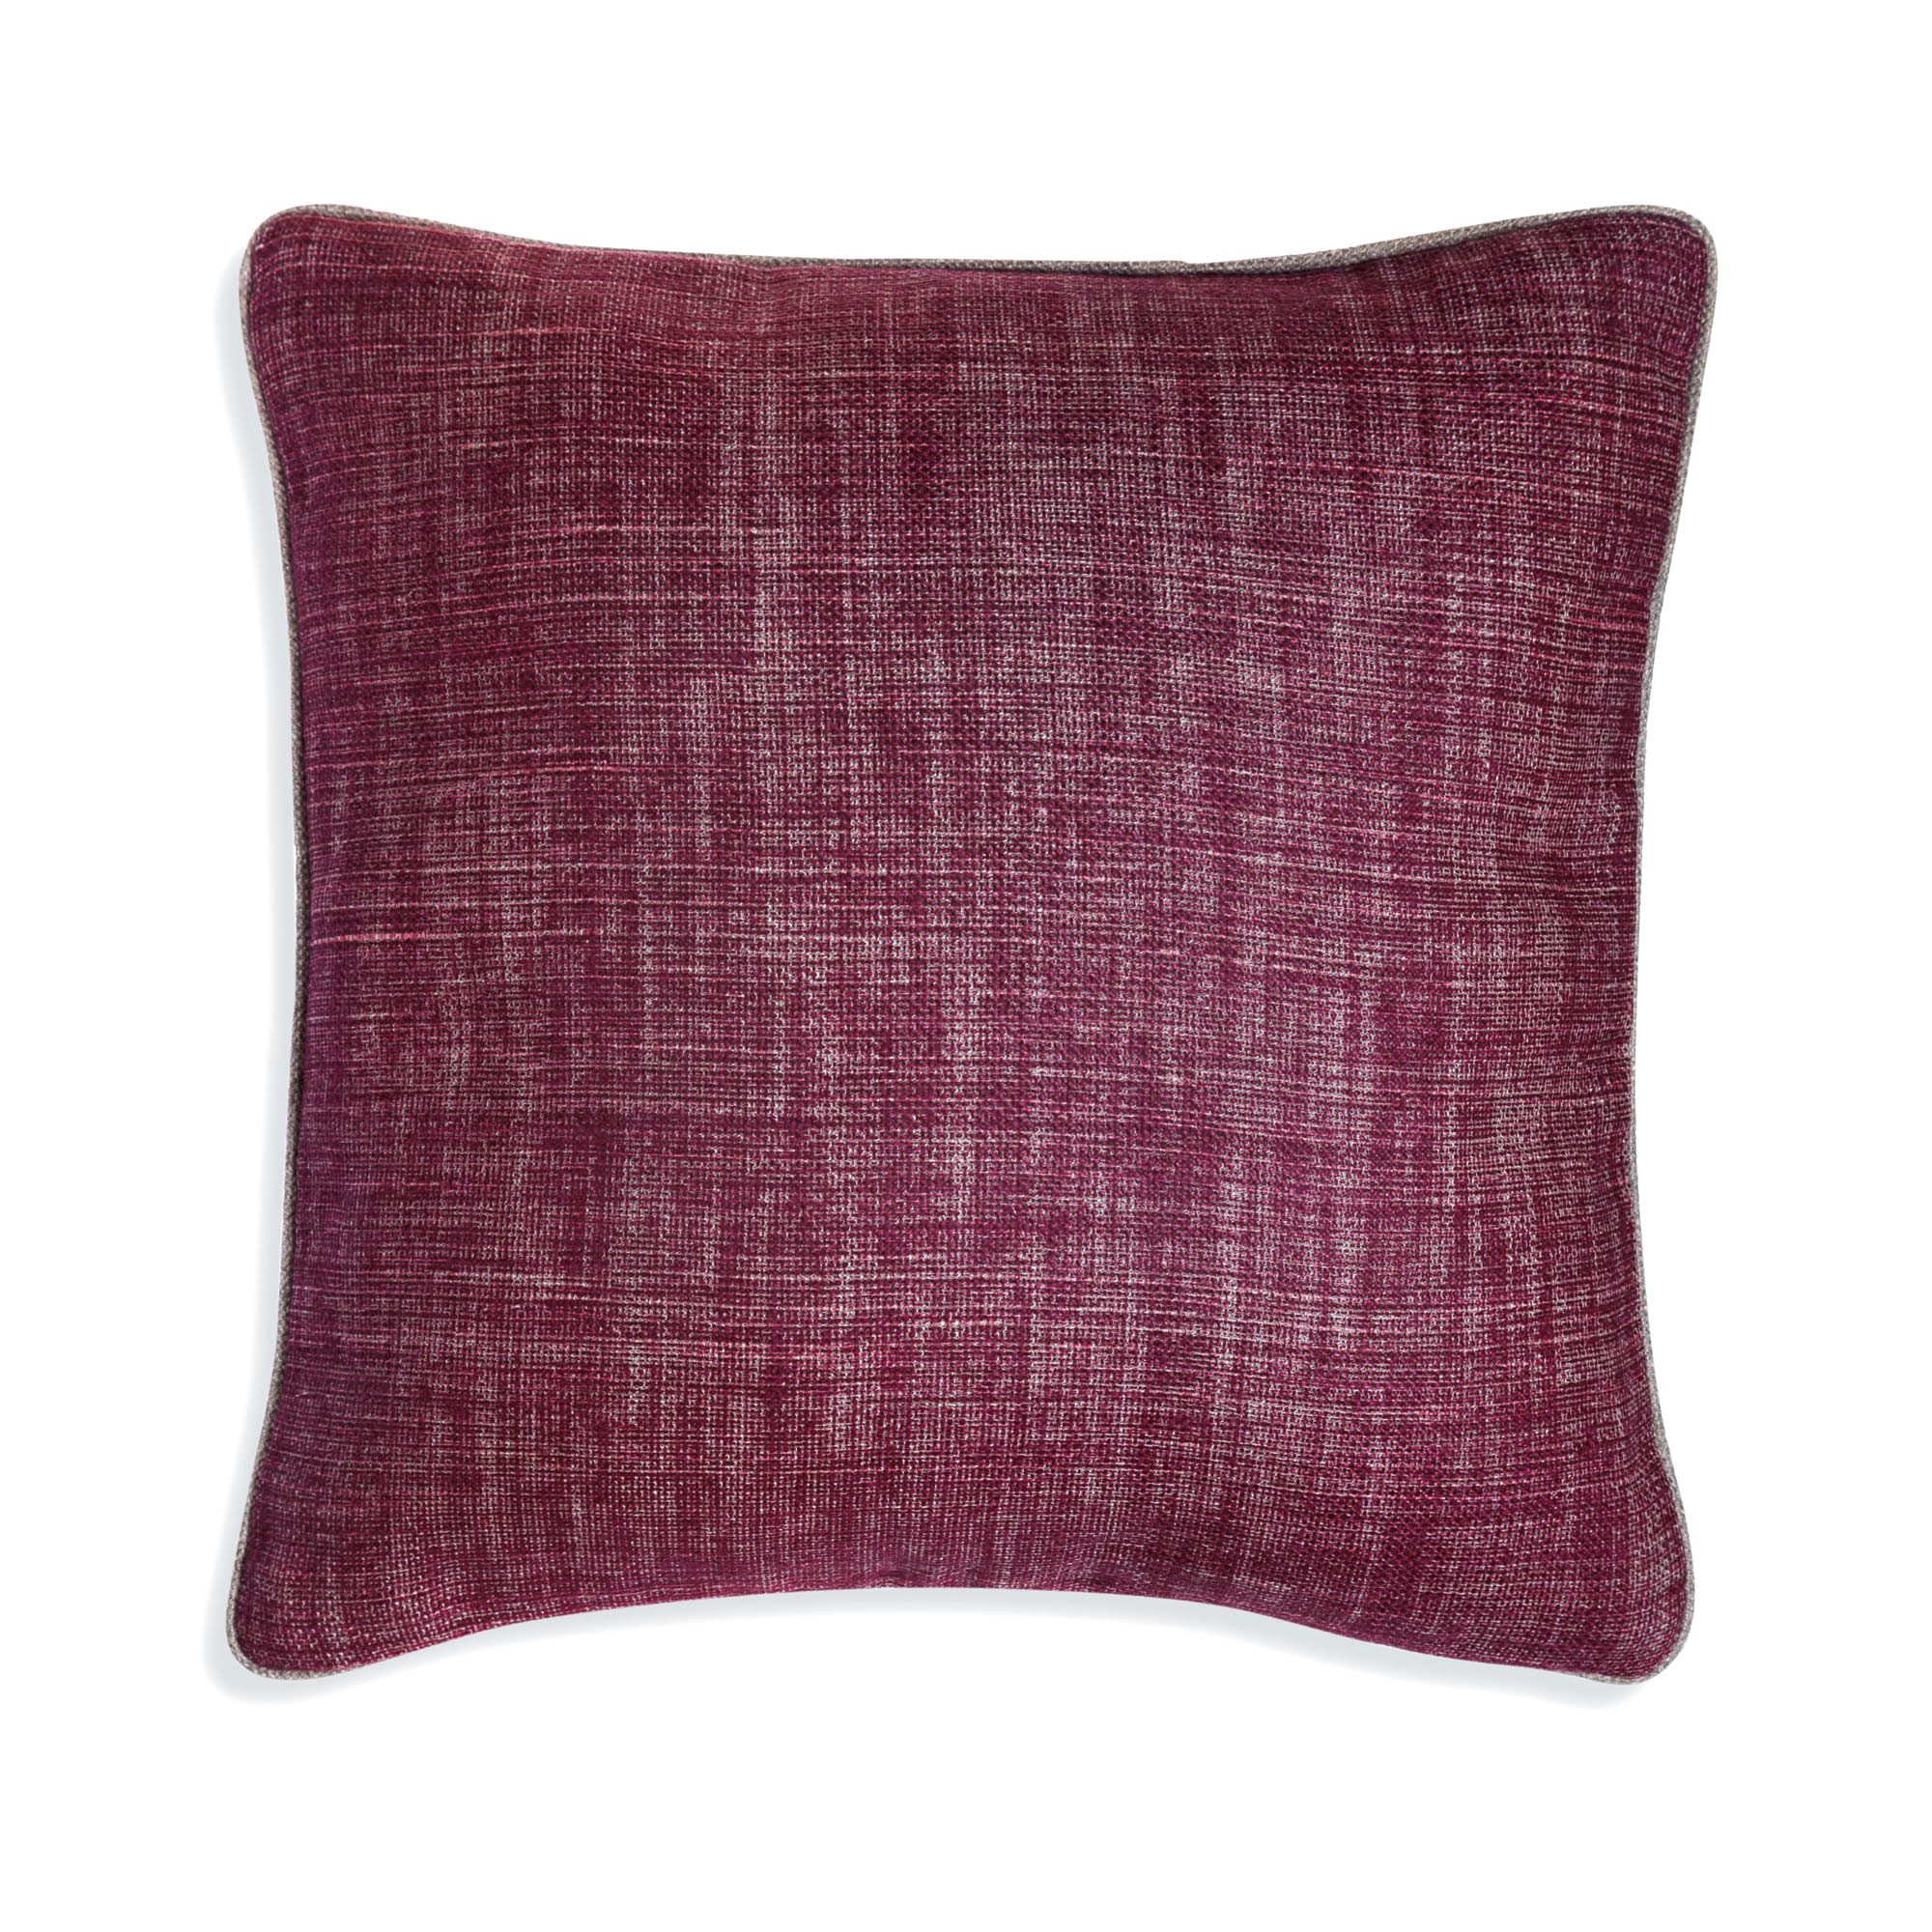 Small Square Cushion in Back to the Fuchsia